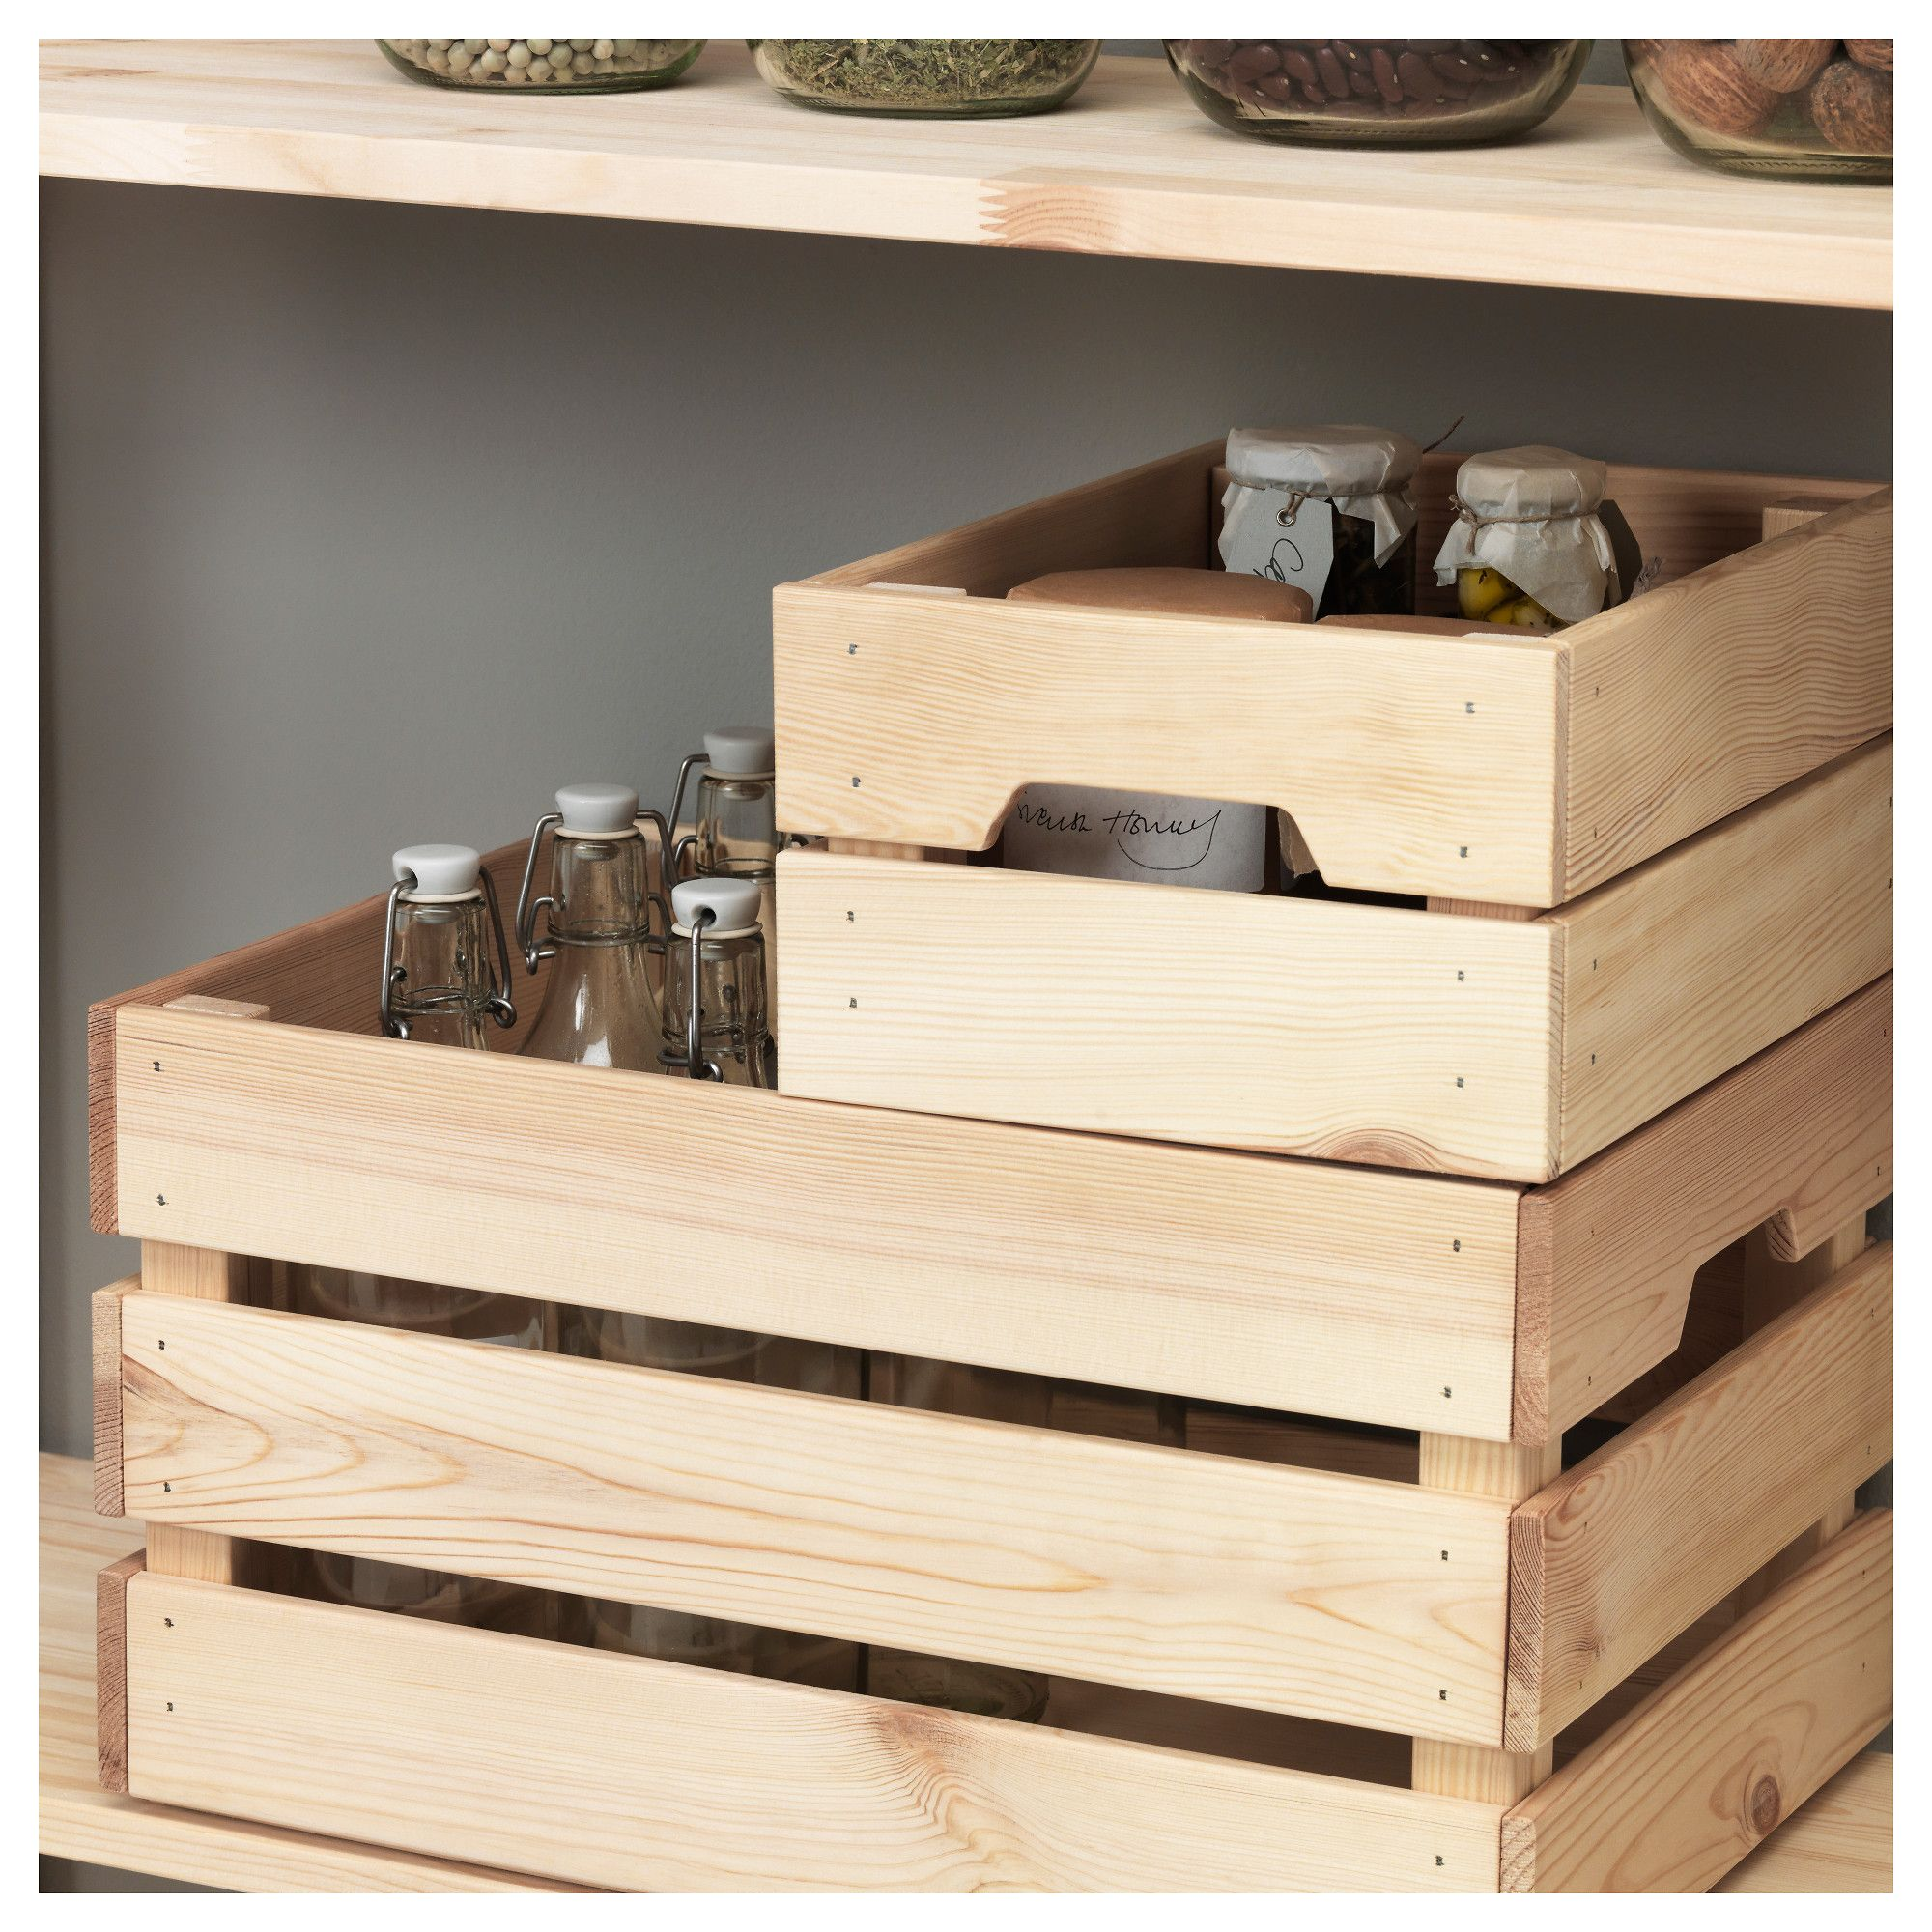 IKEA KNAGGLIG Pine Box in 2020 Ikea, Crates, Wooden boxes